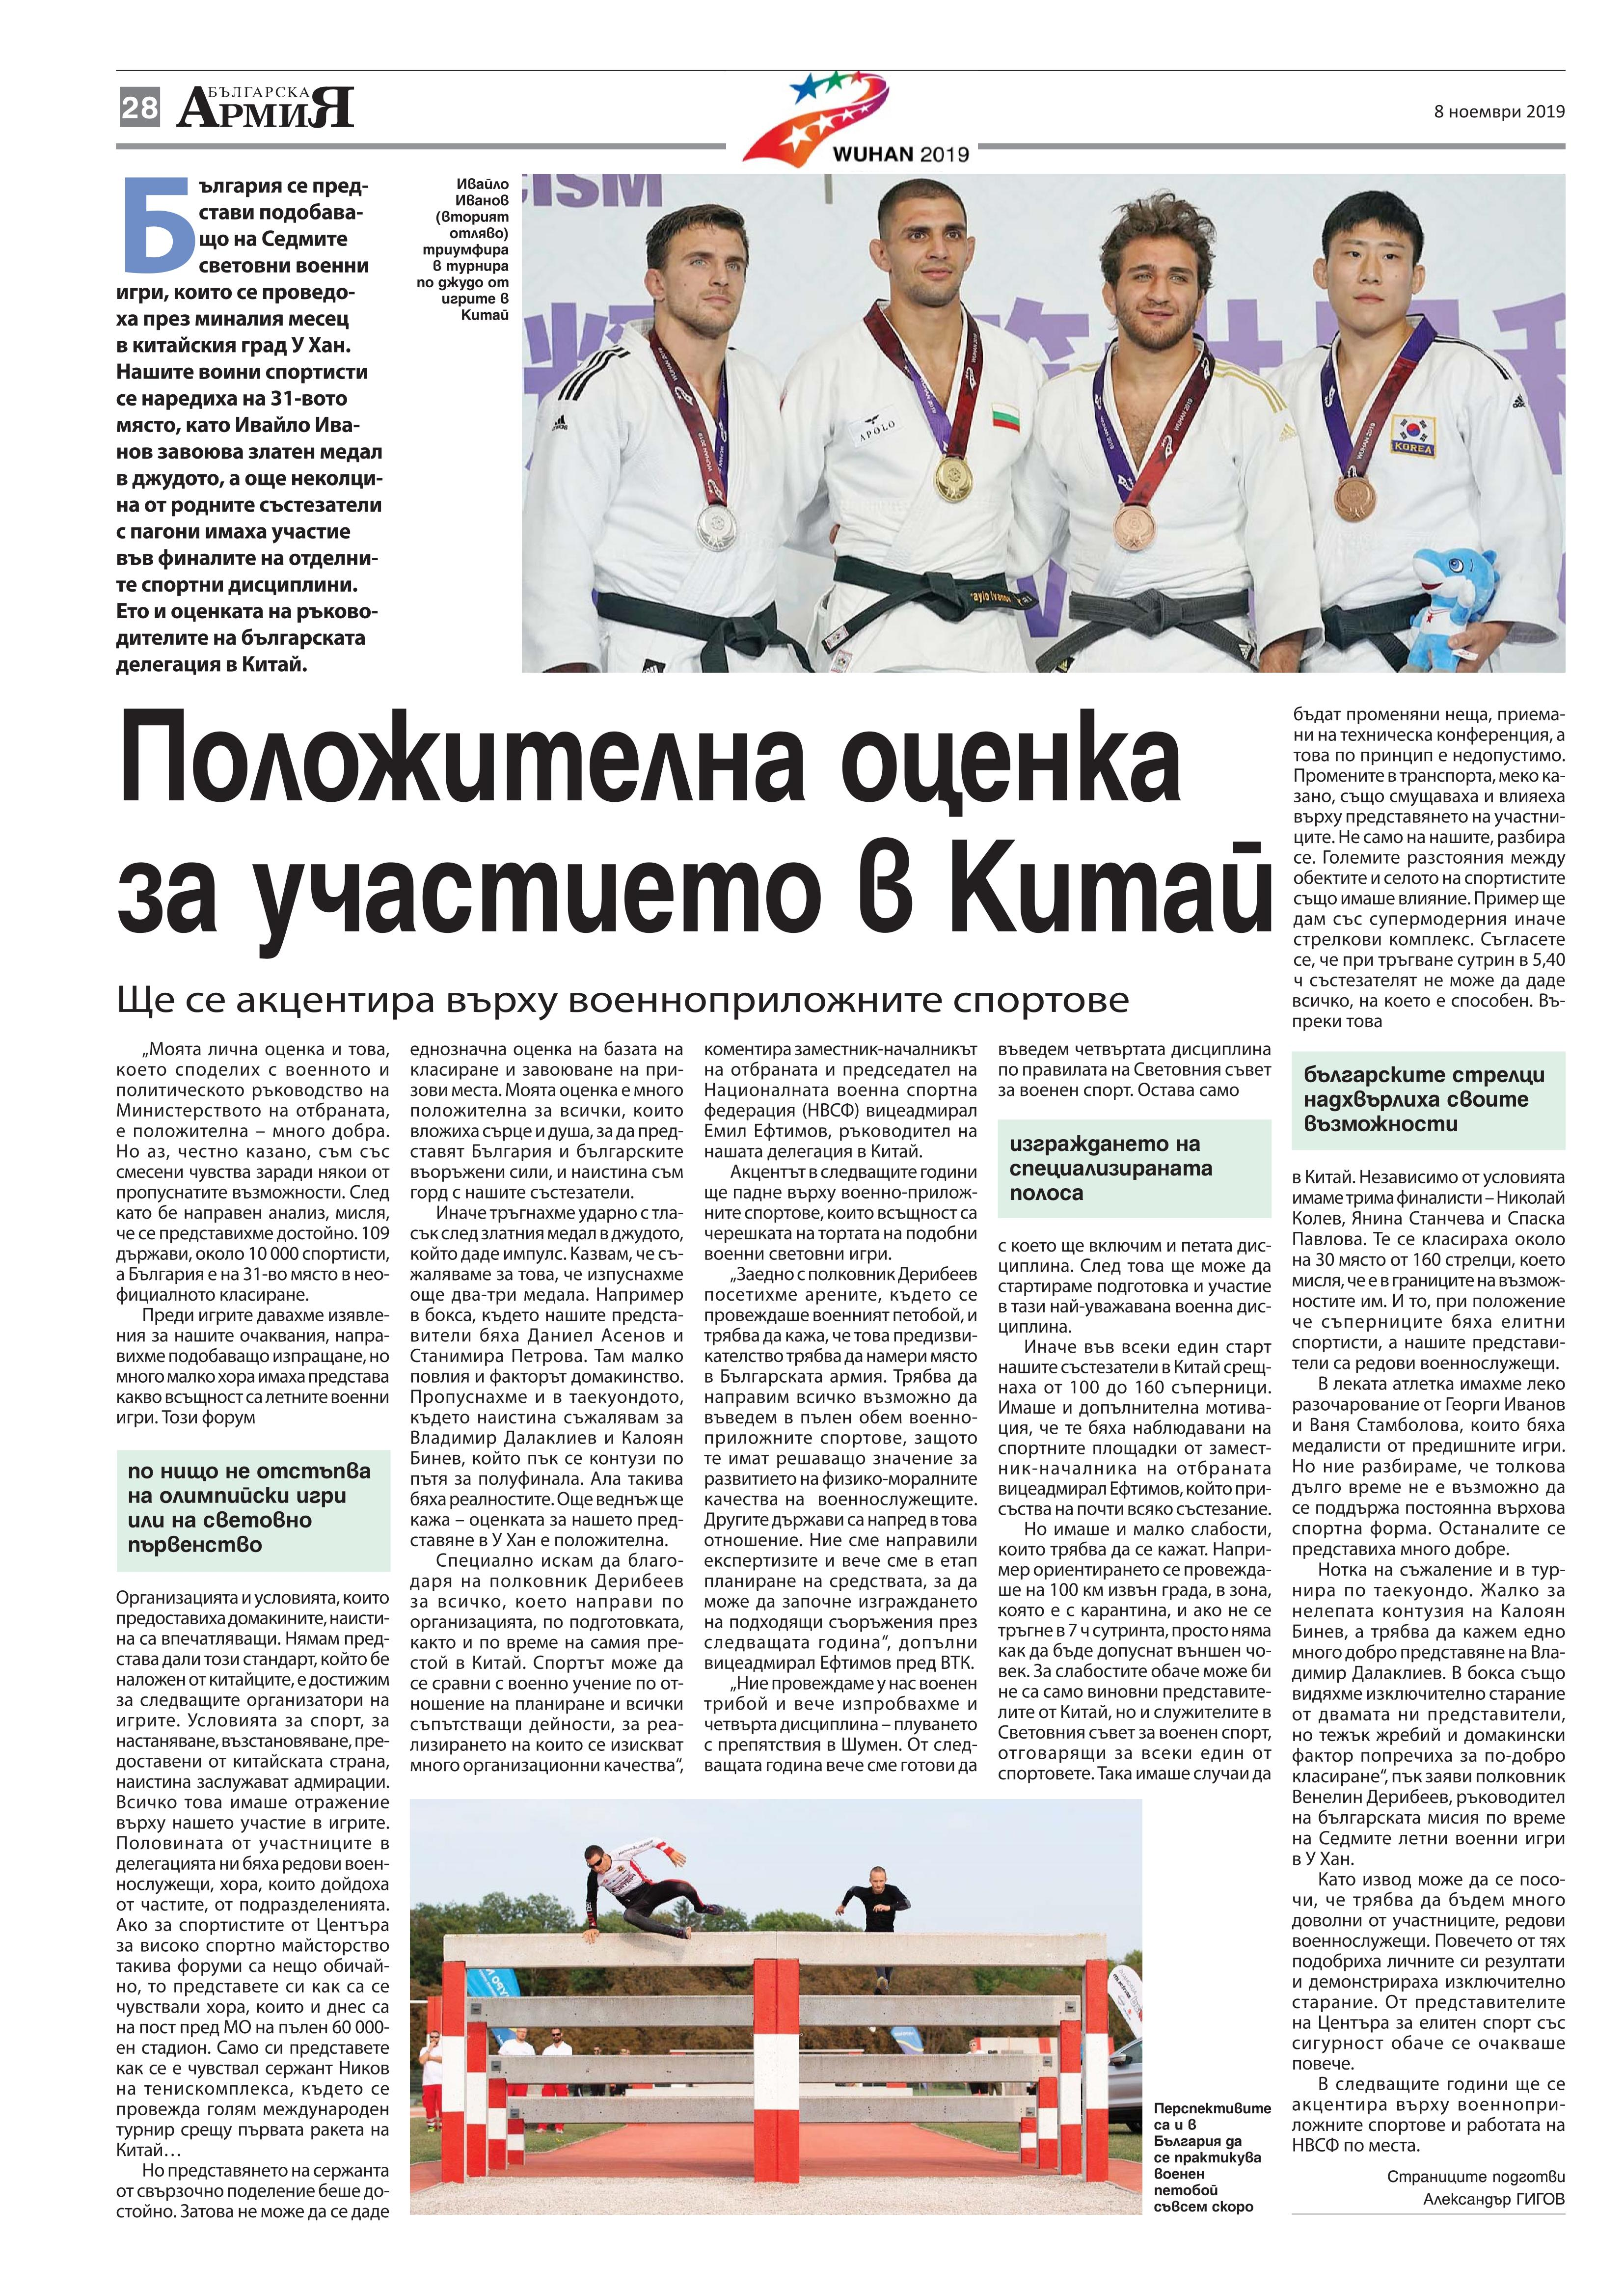 https://www.armymedia.bg/wp-content/uploads/2015/06/28.page1_-96.jpg